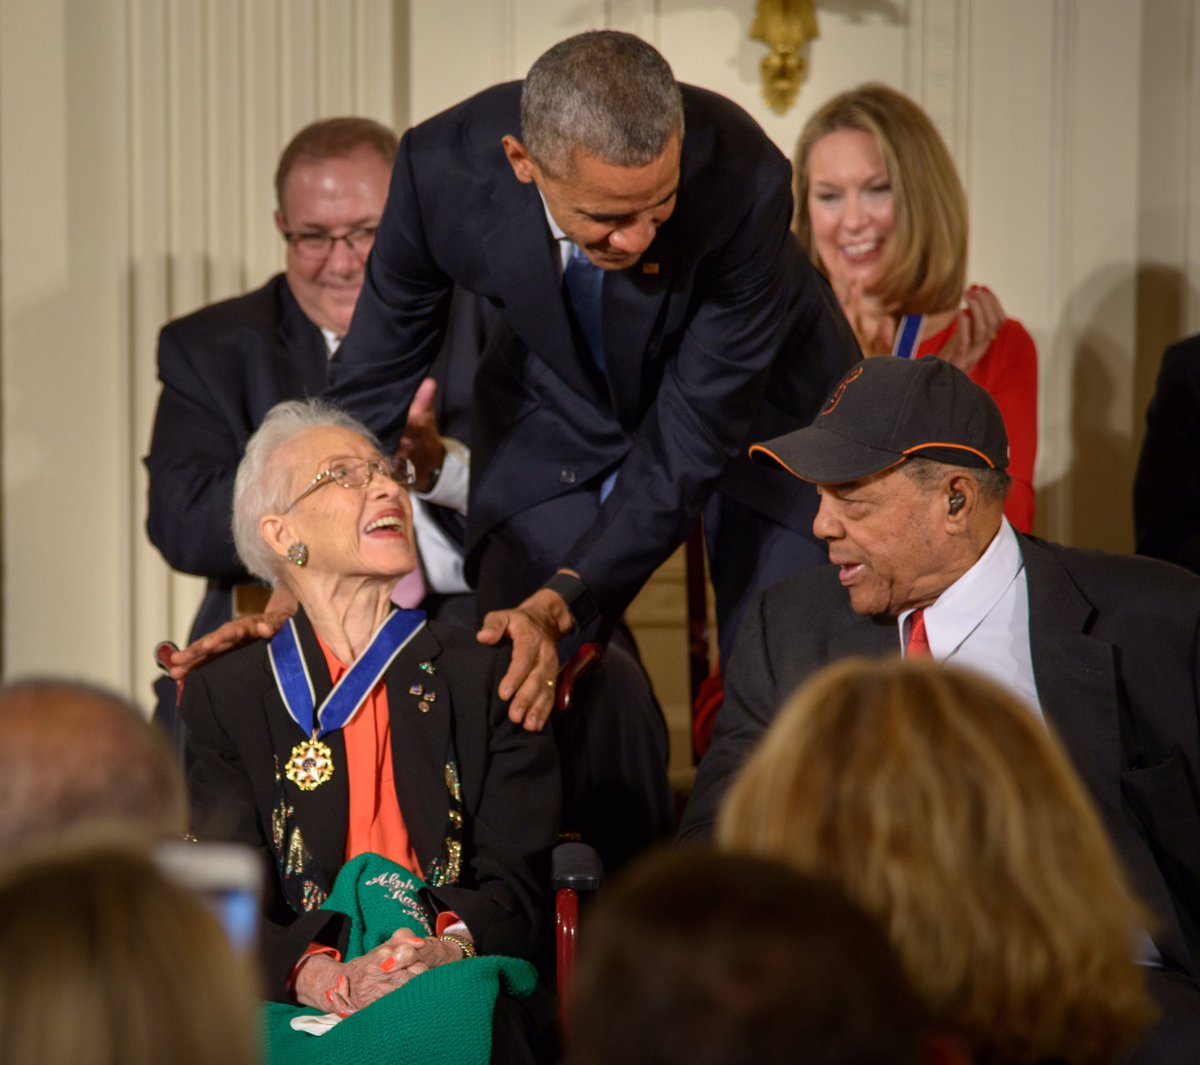 After a lifetime of reaching for the stars, today, Katherine Johnson landed among them. She spent decades as a hidden figure, breaking barriers behind the scenes. But by the end of her life, she had become a hero to millions—including Michelle and me.